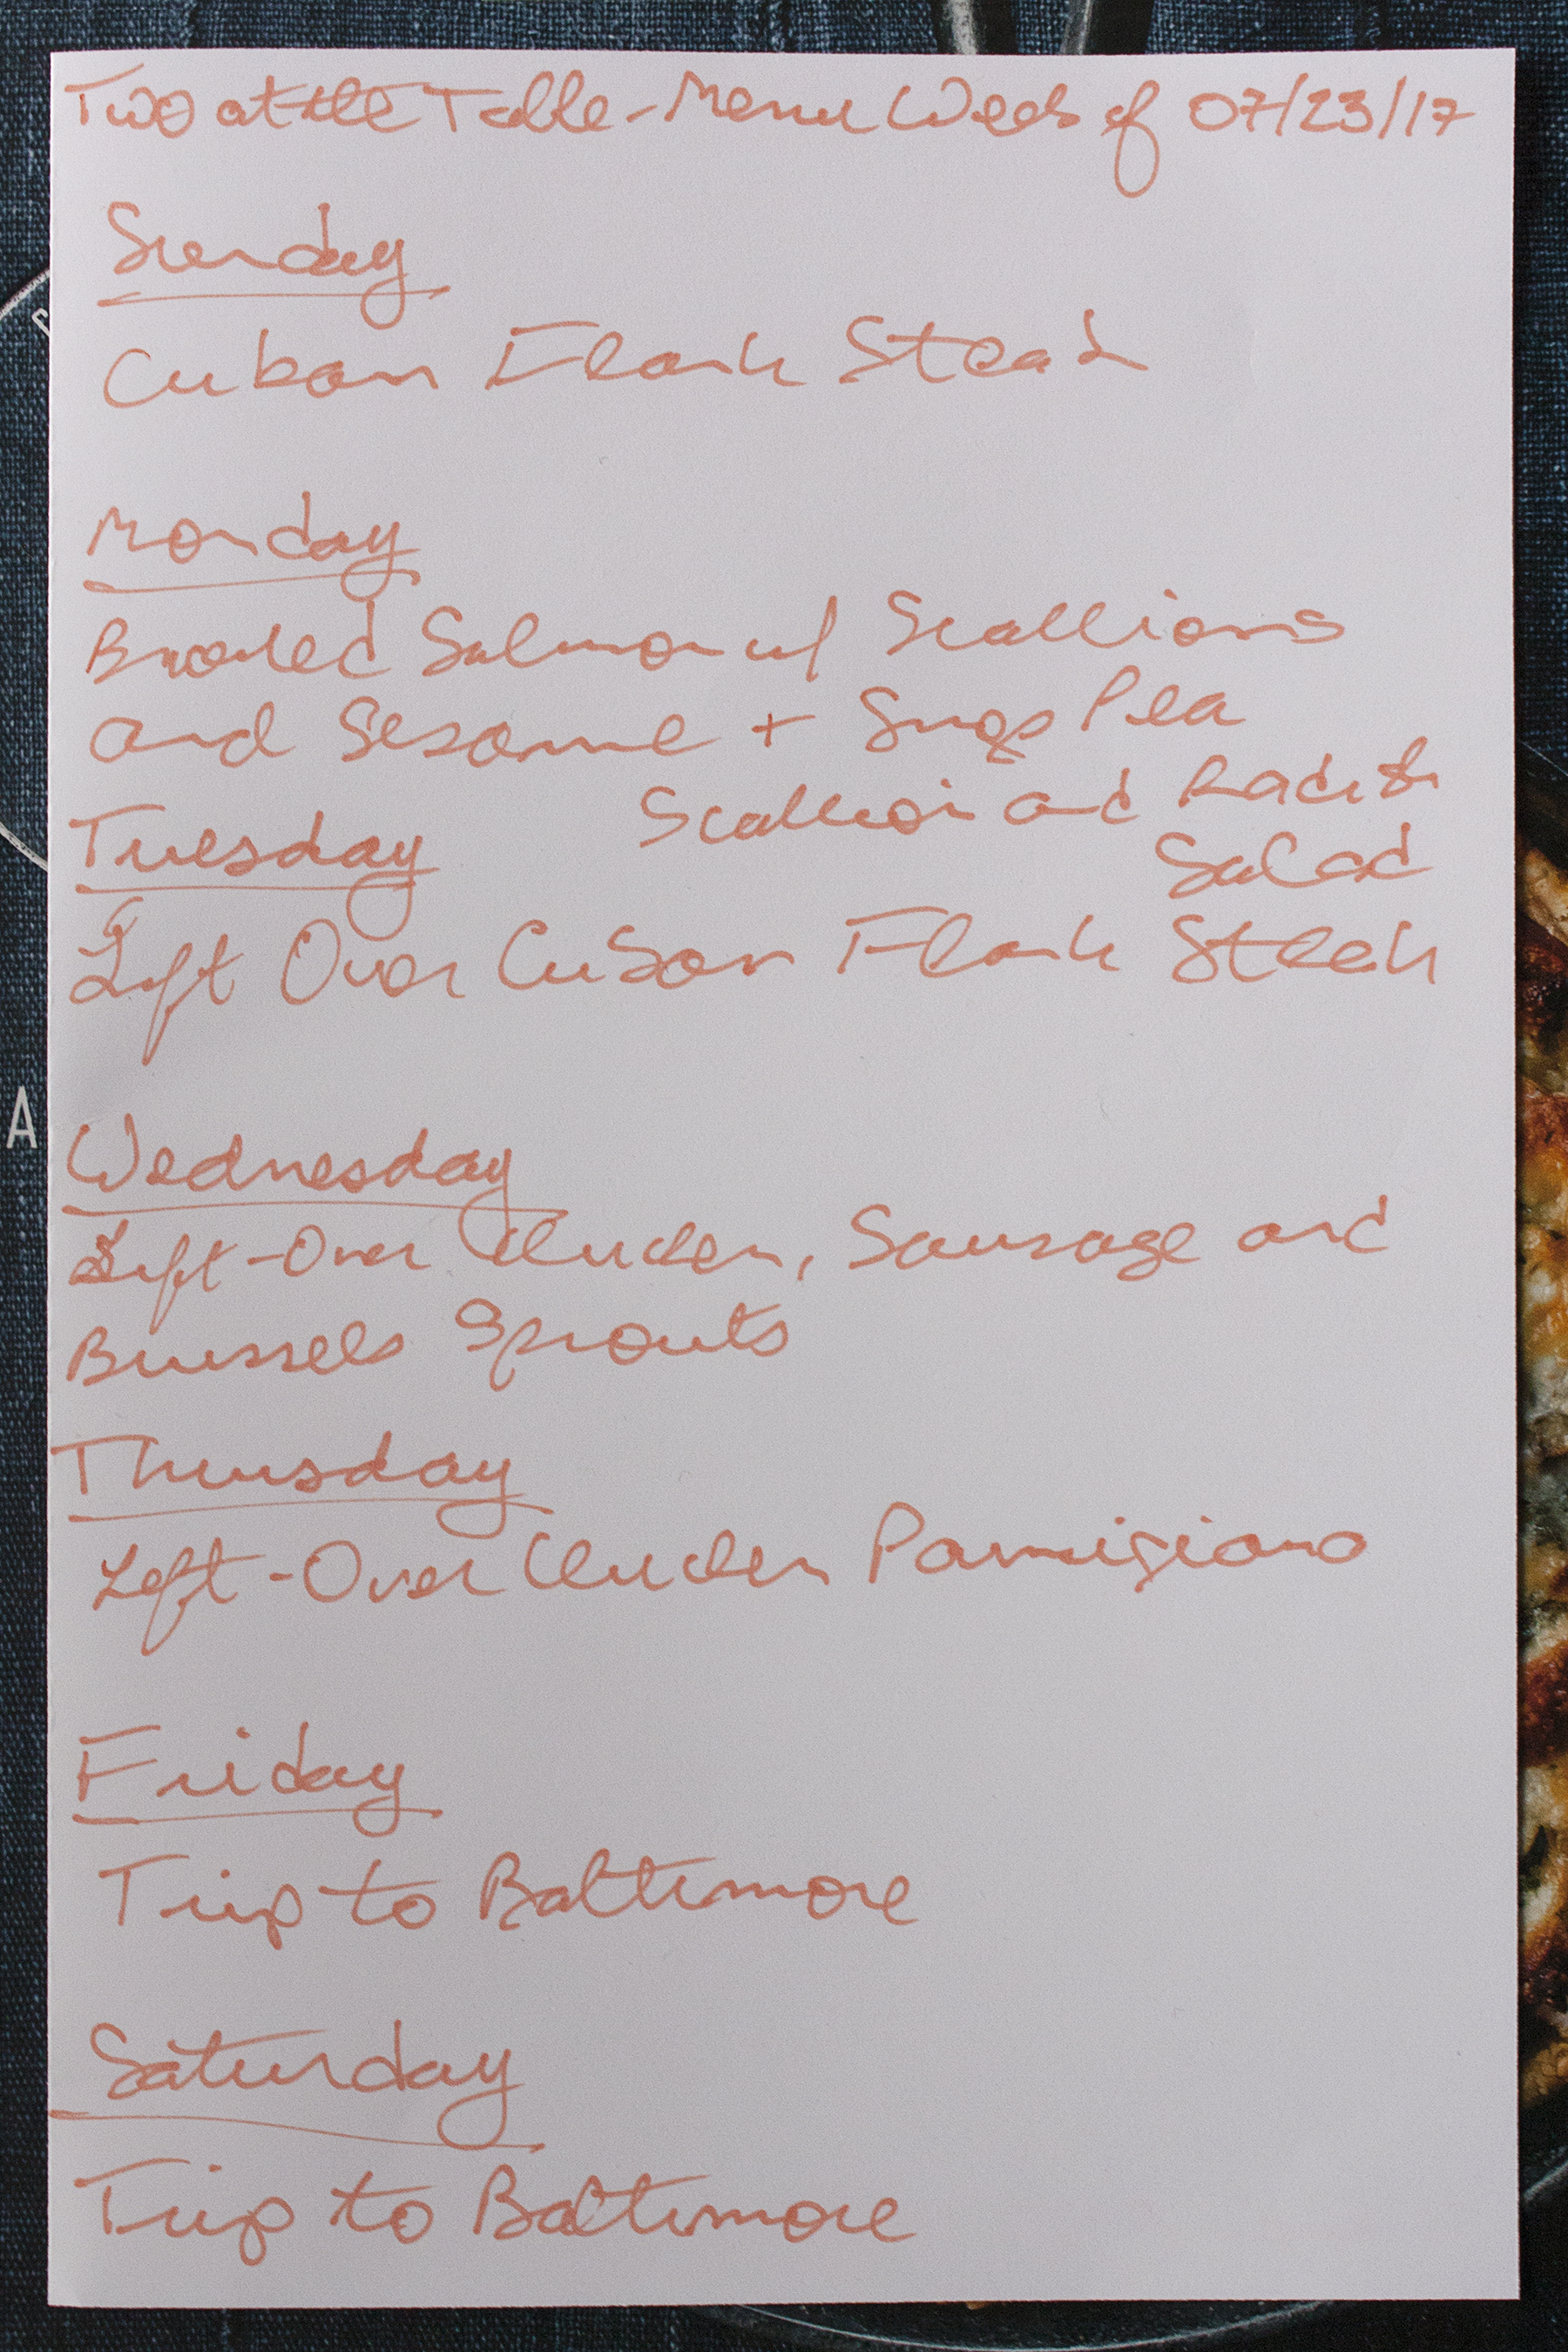 Menu For The Week Of July Two At The Table - Table 23 menu